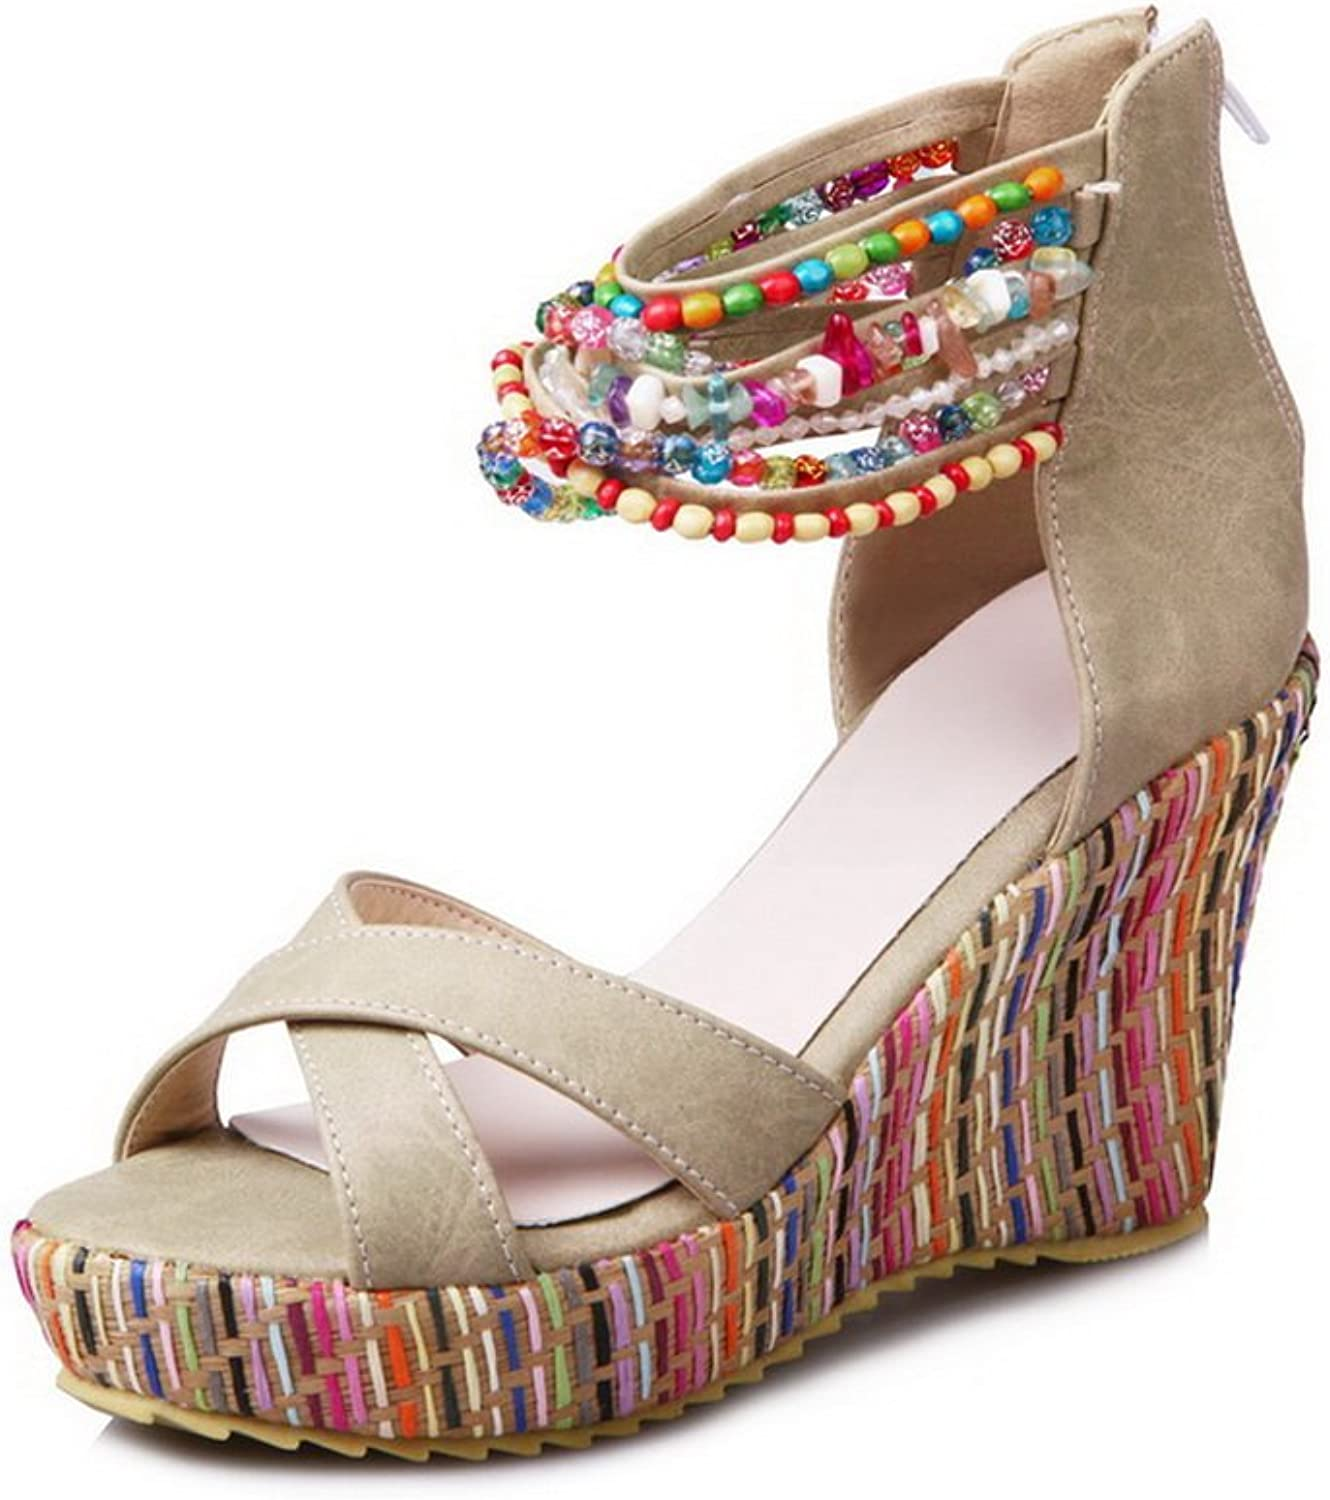 1TO9 Womens Non-Marking Oversized Cold Lining Urethane Platforms Sandals MJS03277